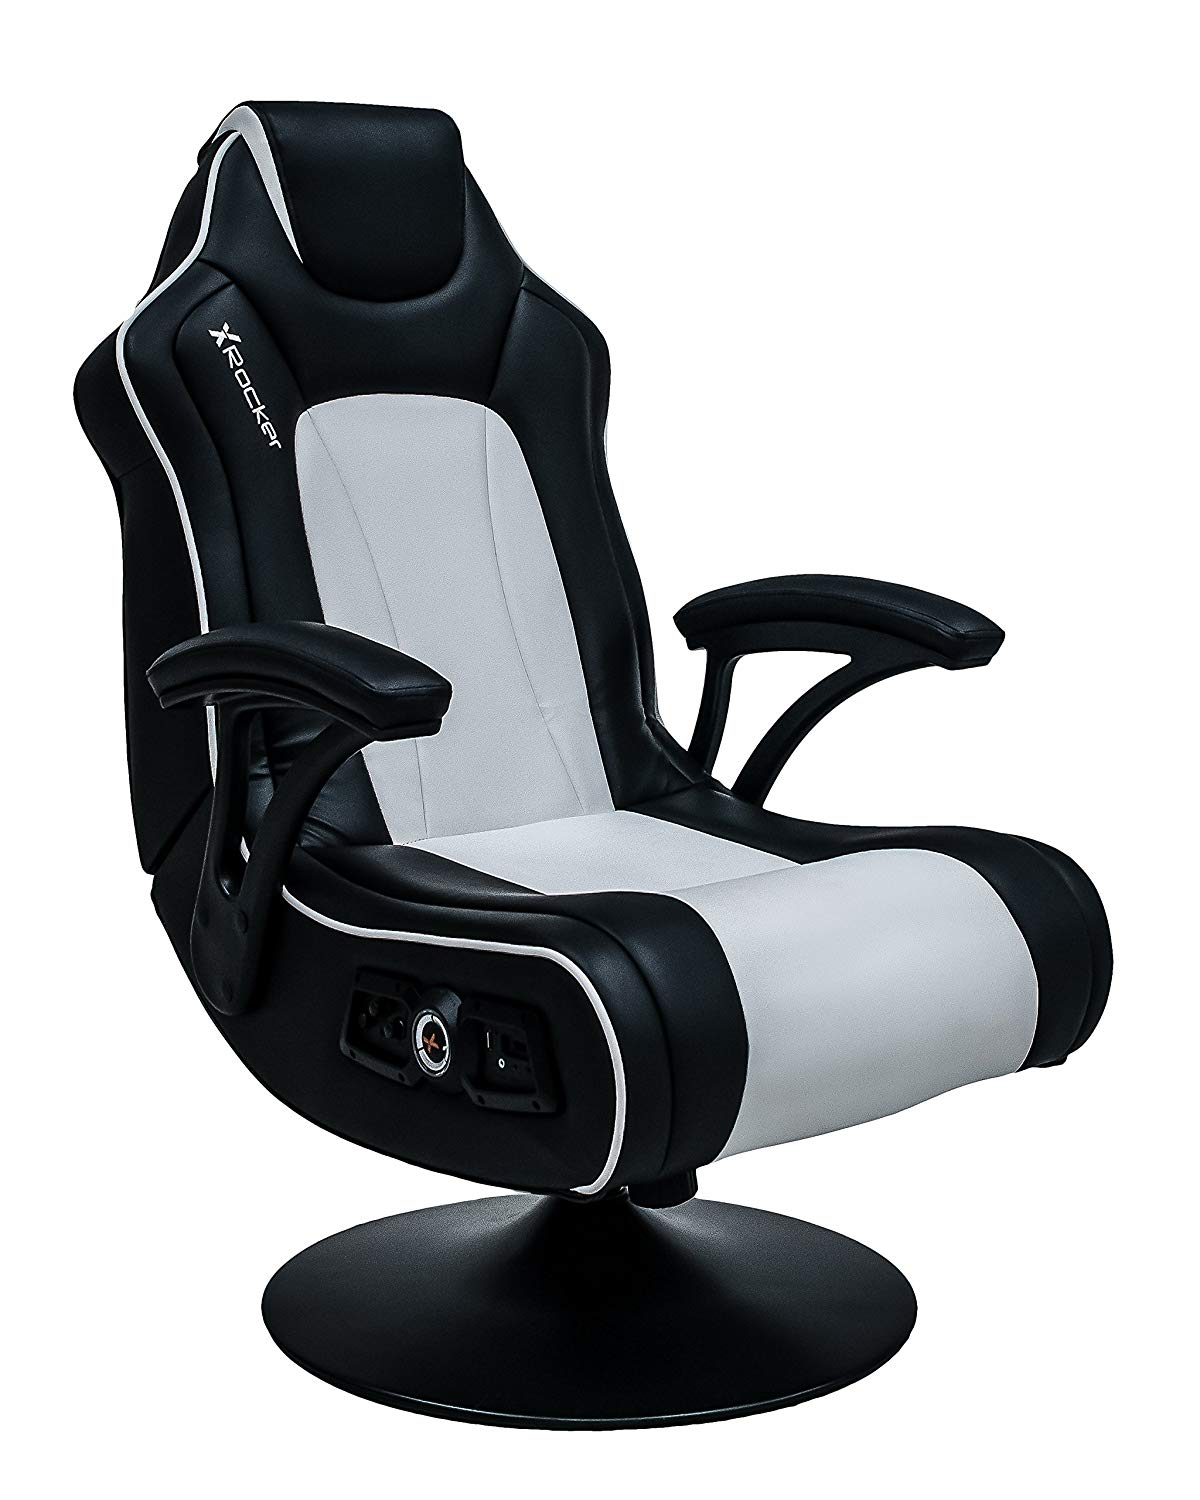 X Rocker Torque 2.1 Gaming Chair (White/Black Upholstery And Black Frame)  With